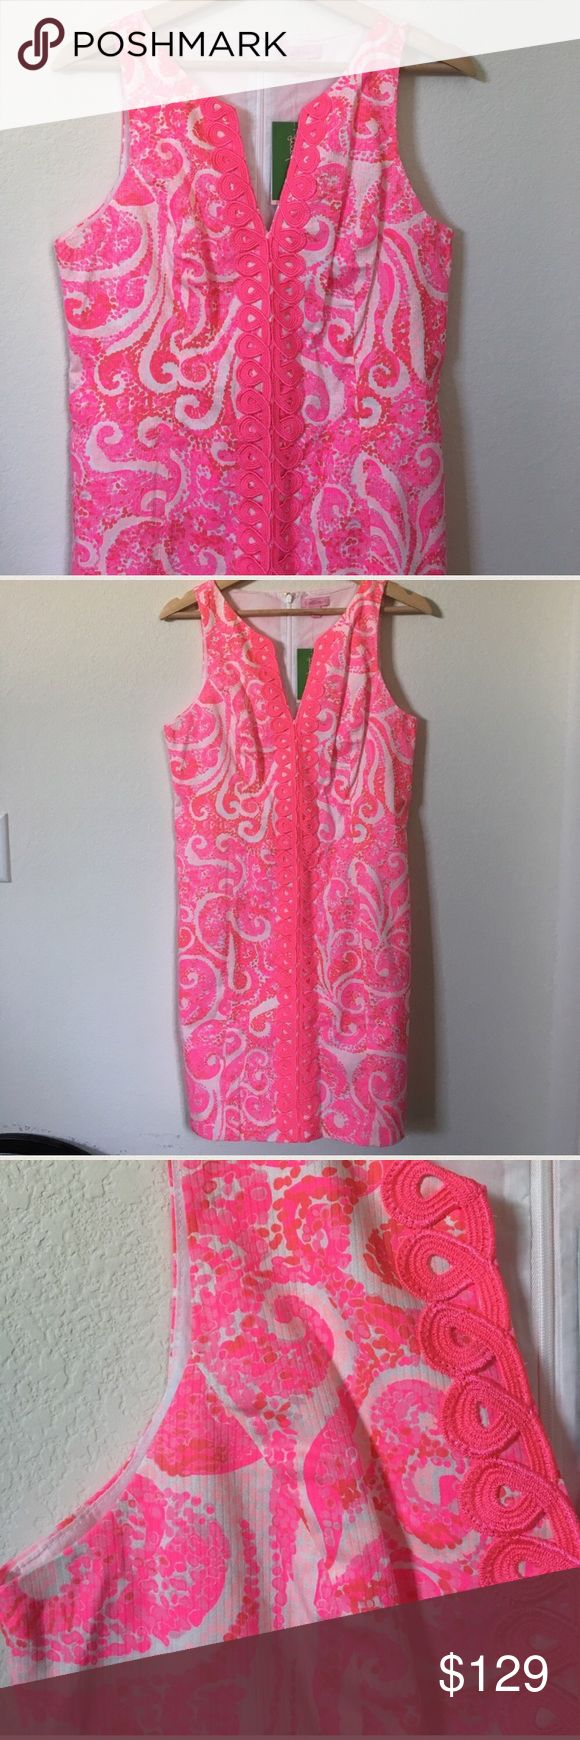 "{ Lilly Pulitzer} Shift Ryder Dress Lilly Pulitzer sleeveless dress with embellishment in front, partial zipper down back, lined, light and colorful. This is perfect for spring and upcoming summer! Comfy and cute! Measures laying flat approx 17.5"" pit to pit 16.5"" waist 20"" bottom 34.25"" mid back top down. Lilly Pulitzer Dresses"